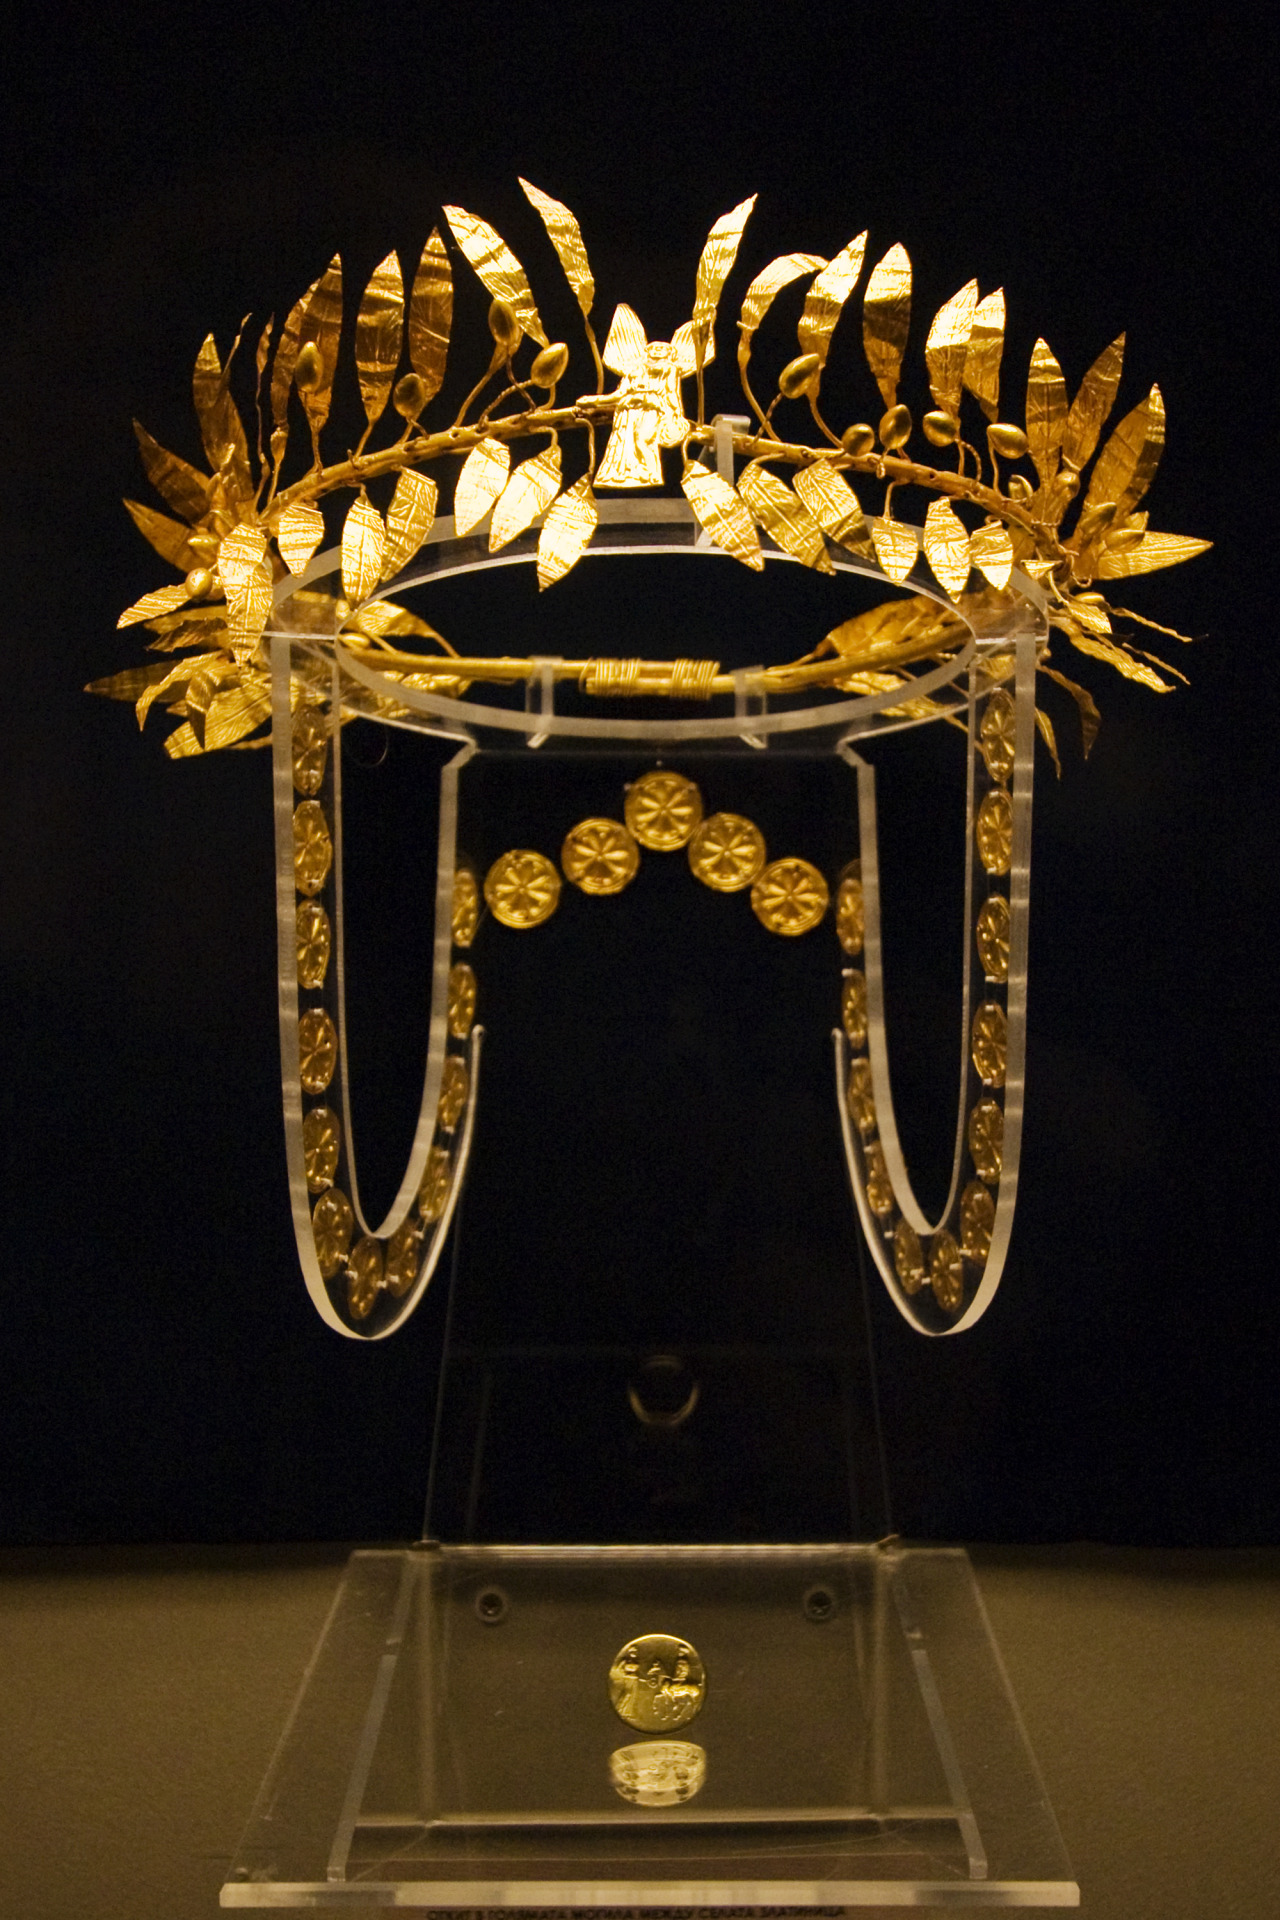 ancientart: Odrysian Wreath from Golyamata Mogila. A golden wreath and ring from the burial of an Odrysian Aristocrat at the Golyamata Mogila tumulus, situated between the villages of Zlatinitsa and Malomirovo in the Yambol region. Dated to the mid 4th century BC. Courtesy & currently located at the National Museum of History in Sofia, Bulgaria. Photo taken by vintagedept.